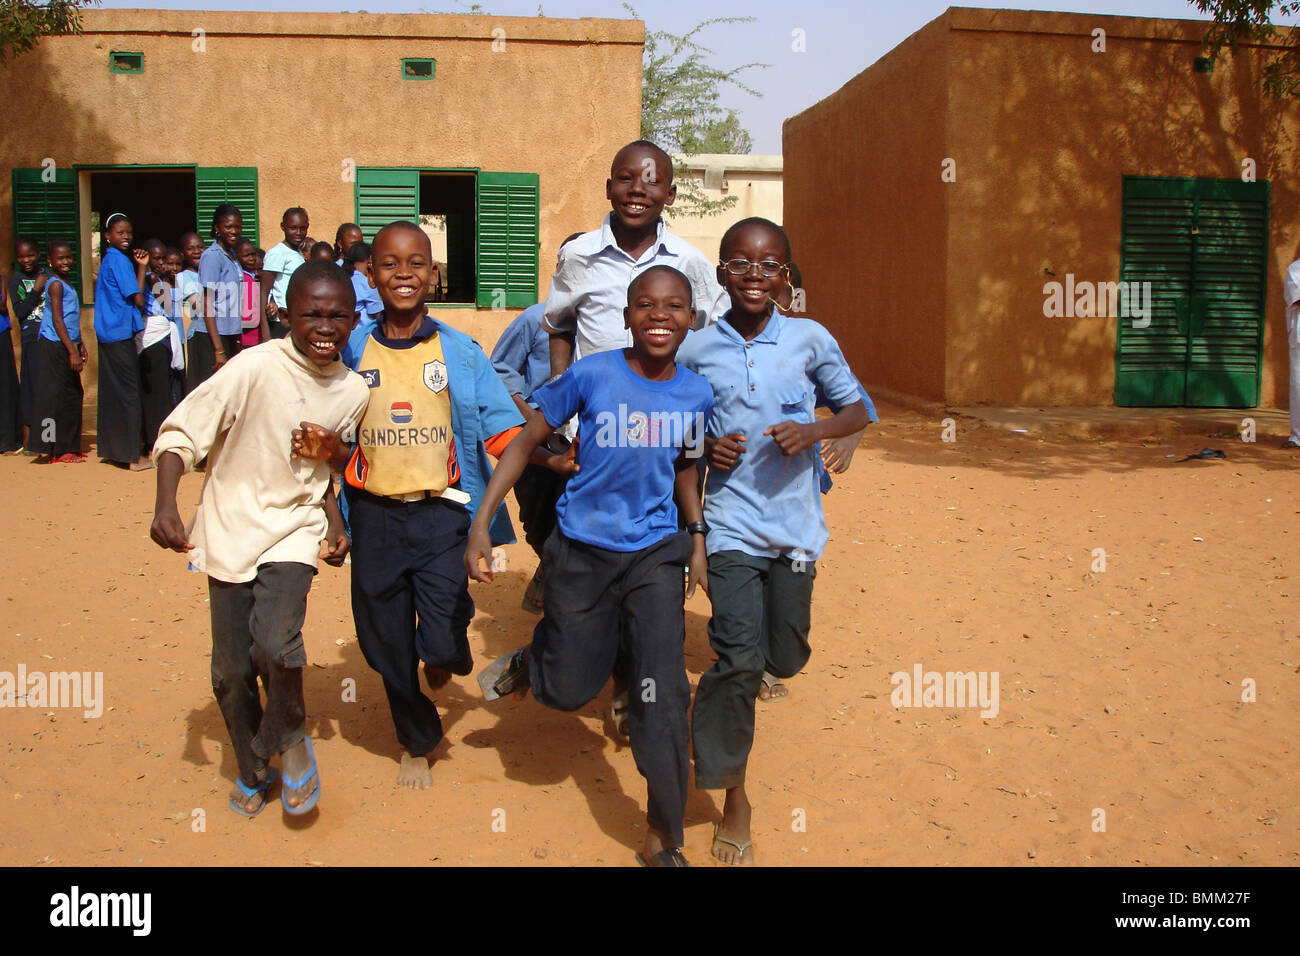 Niger, Niamey, Group of african pupils in their school uniform running in the courtyard - Stock Image